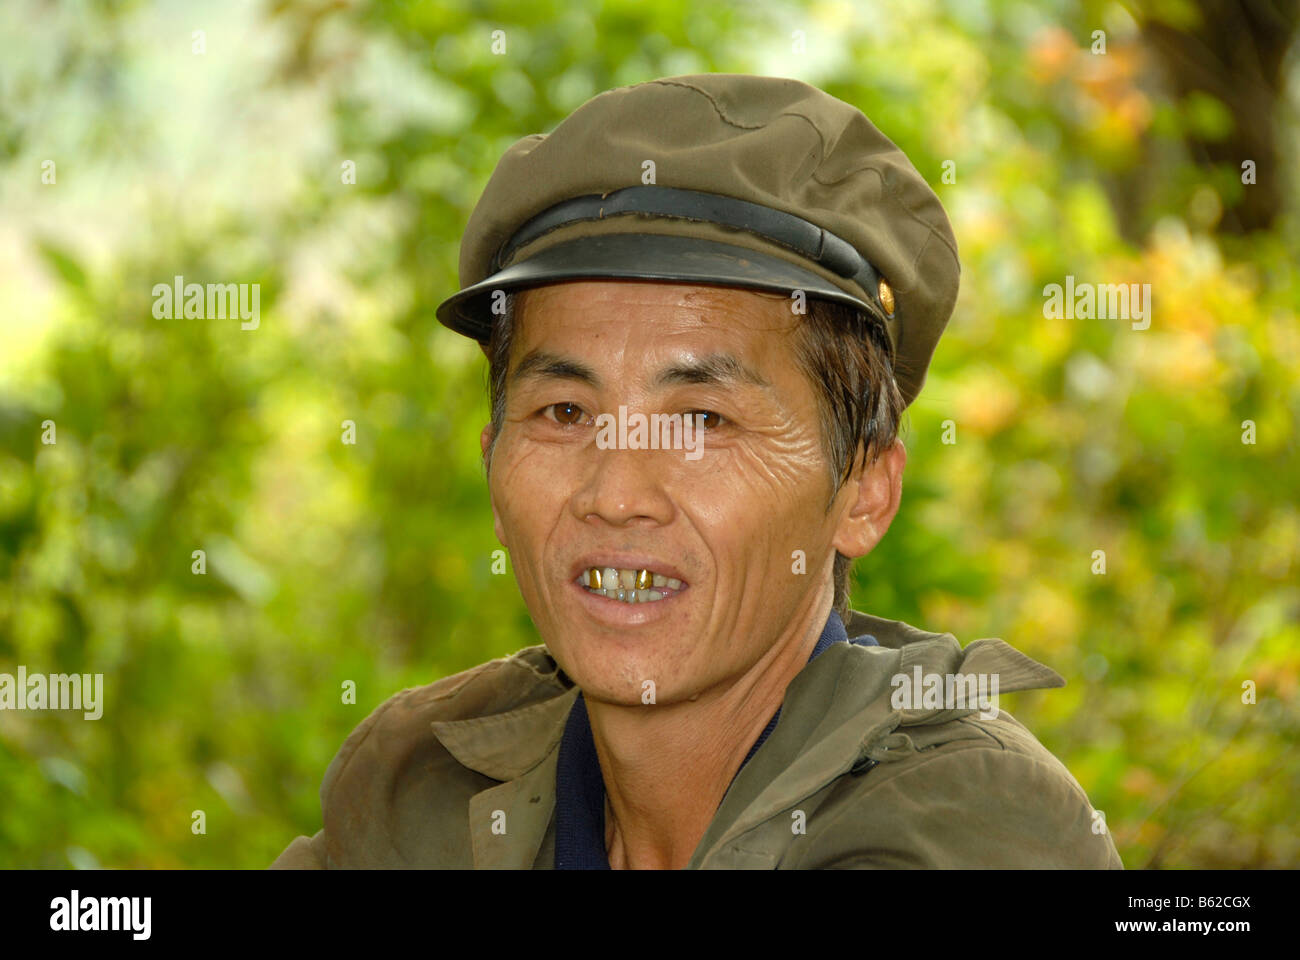 Portrait of a smiling communist wearing his uniform, near Luang Prabang, Laos, Southeast Asia - Stock Image